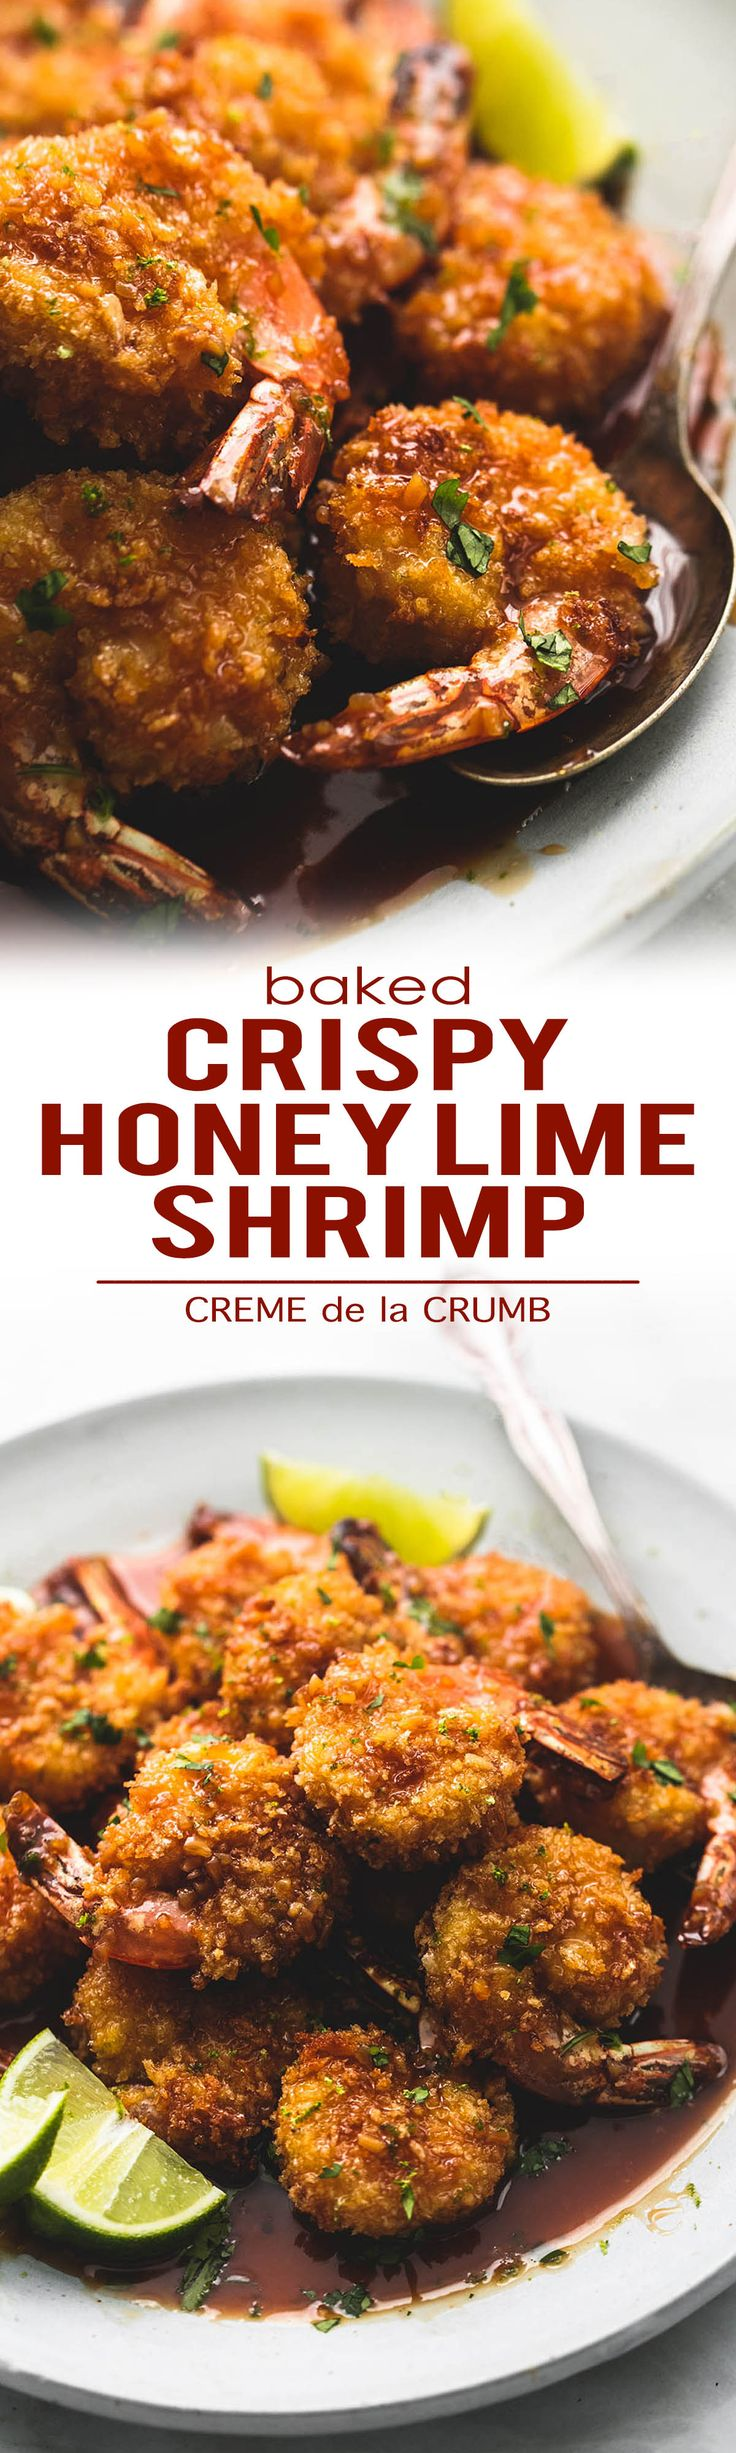 Sweet and tangy baked crispy honey lime shrimp is lighter than fried versions with the most incredible sticky honey, lime, and garlic glaze. The best easy healthy shrimp dinner you've had! | lecremedelacrumb.com